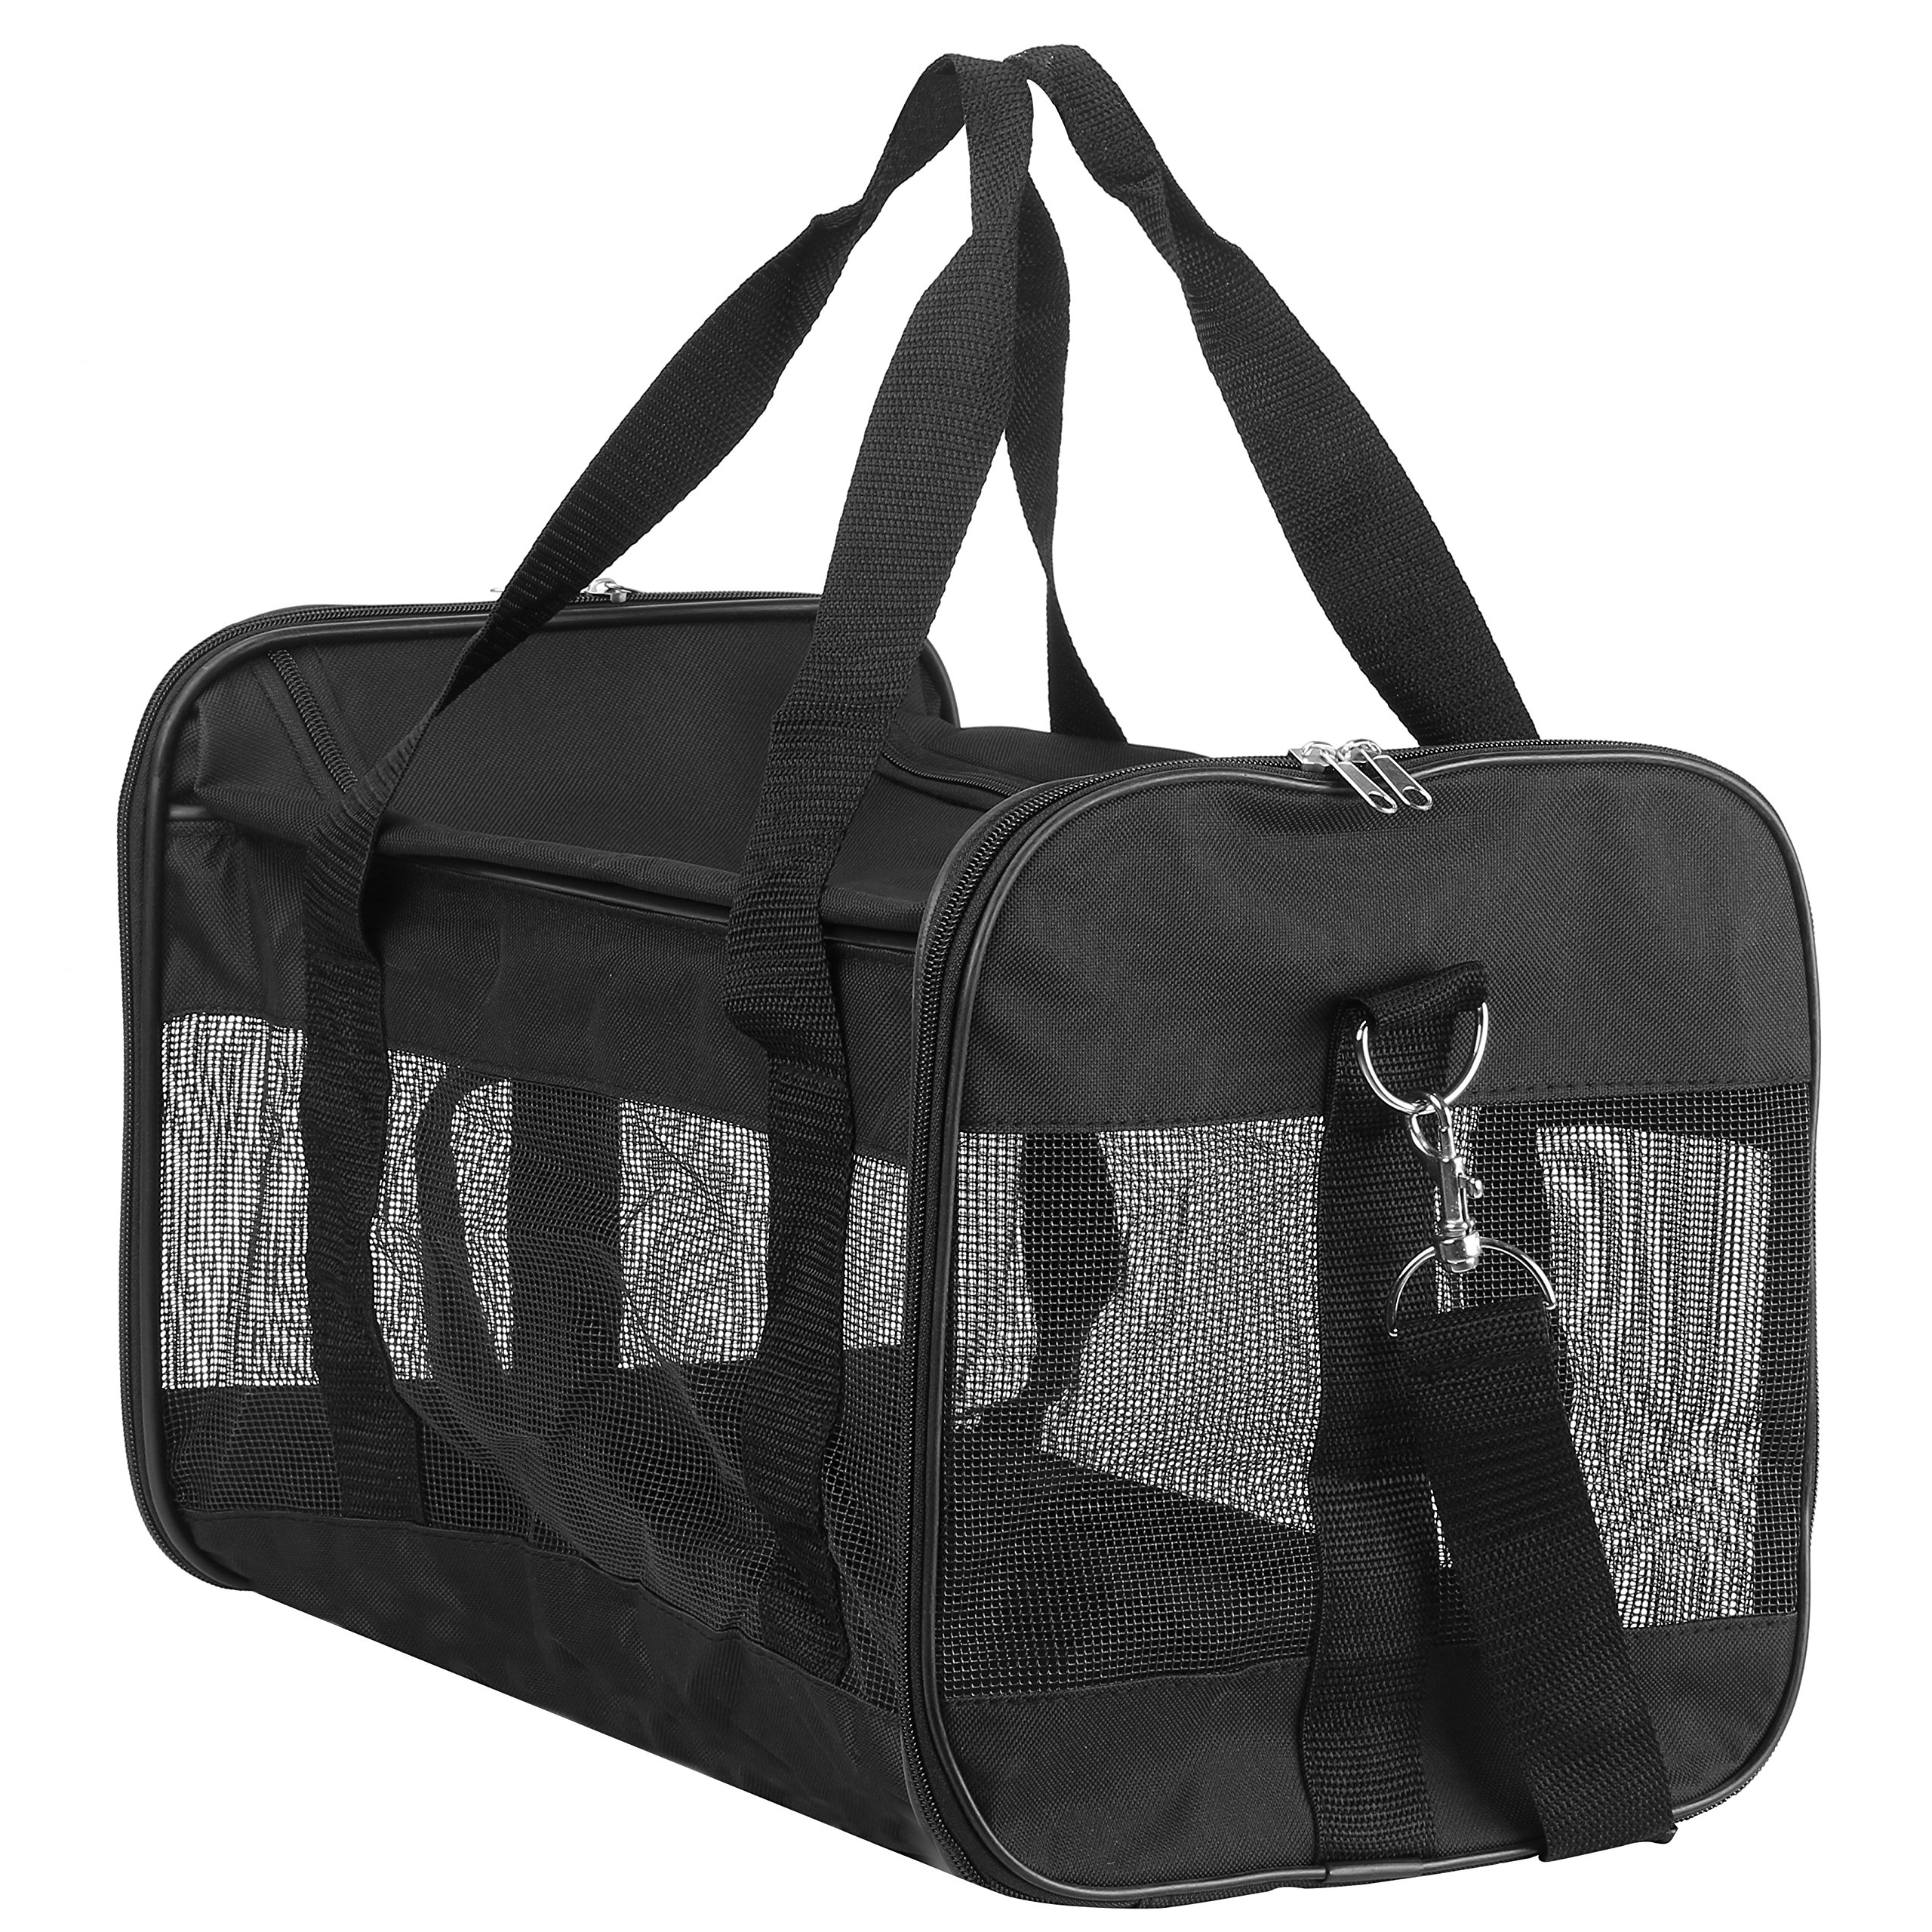 Hiado Pet Carrier Collapsible Soft Sided Travel Bag with Mesh Net Open Top 2 Door for Cats and Small Dogs 17x11x11 Inch Black